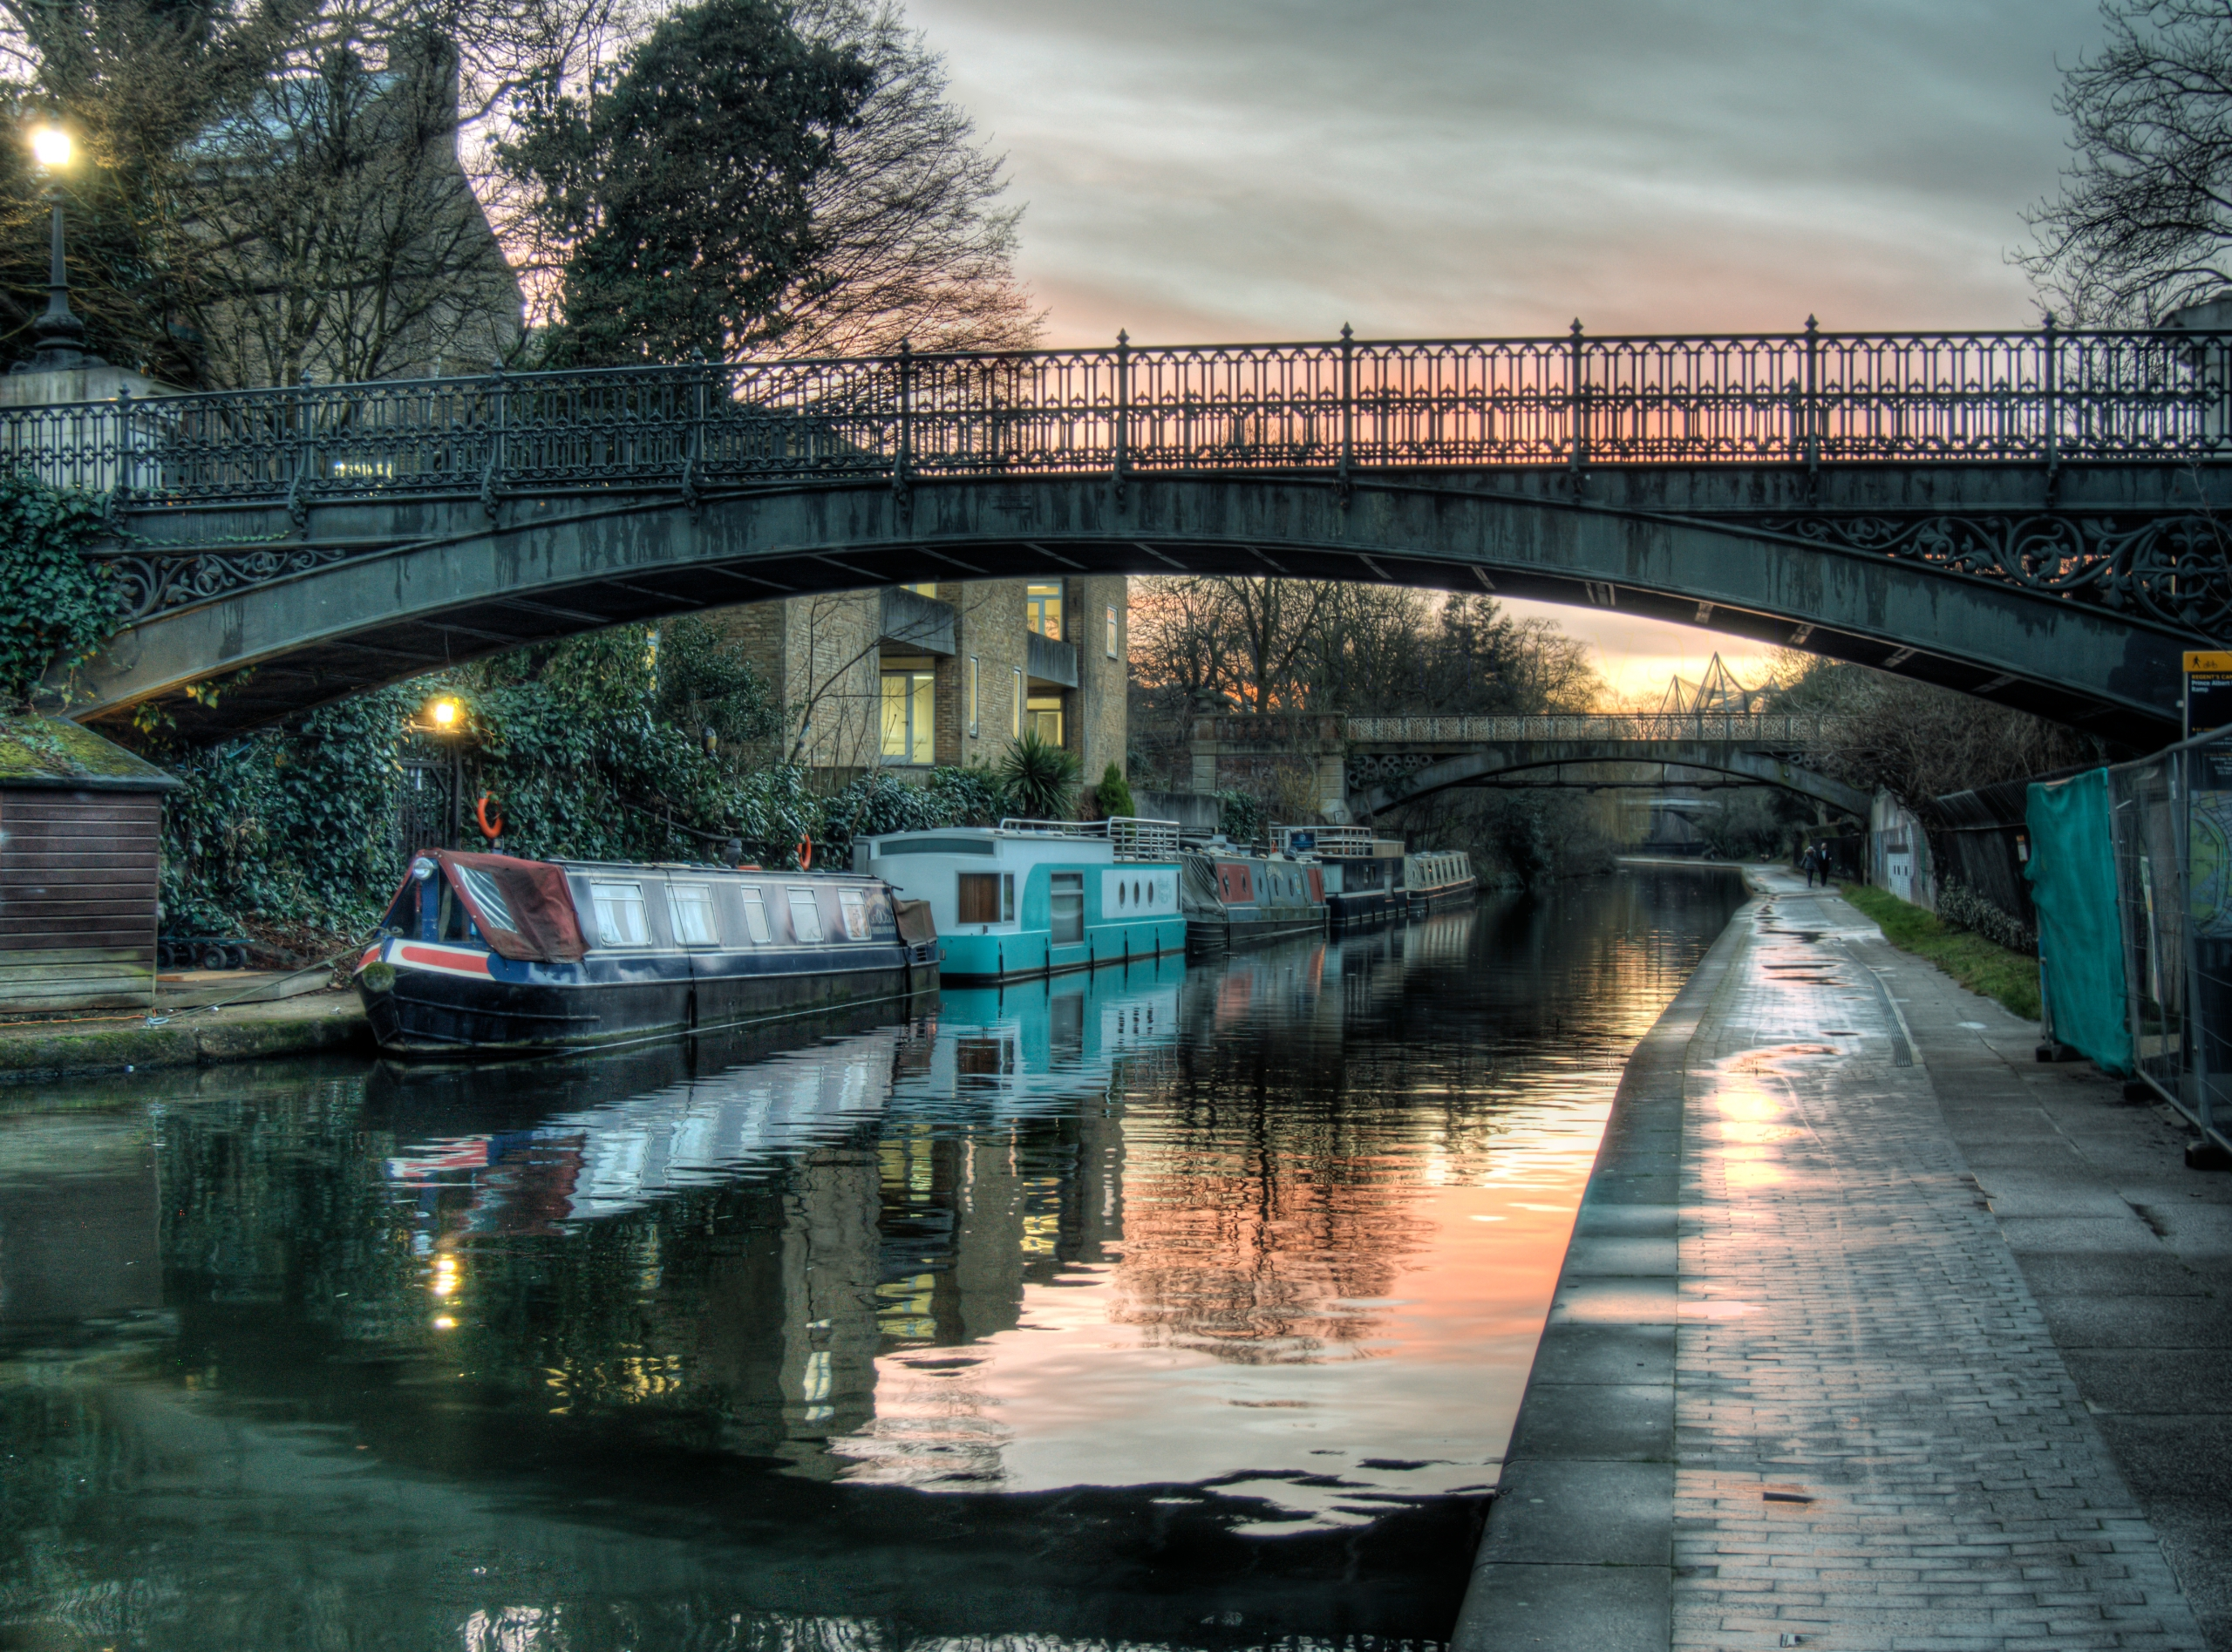 Camden Sunset - Canal London - camden - neilhoward | ello